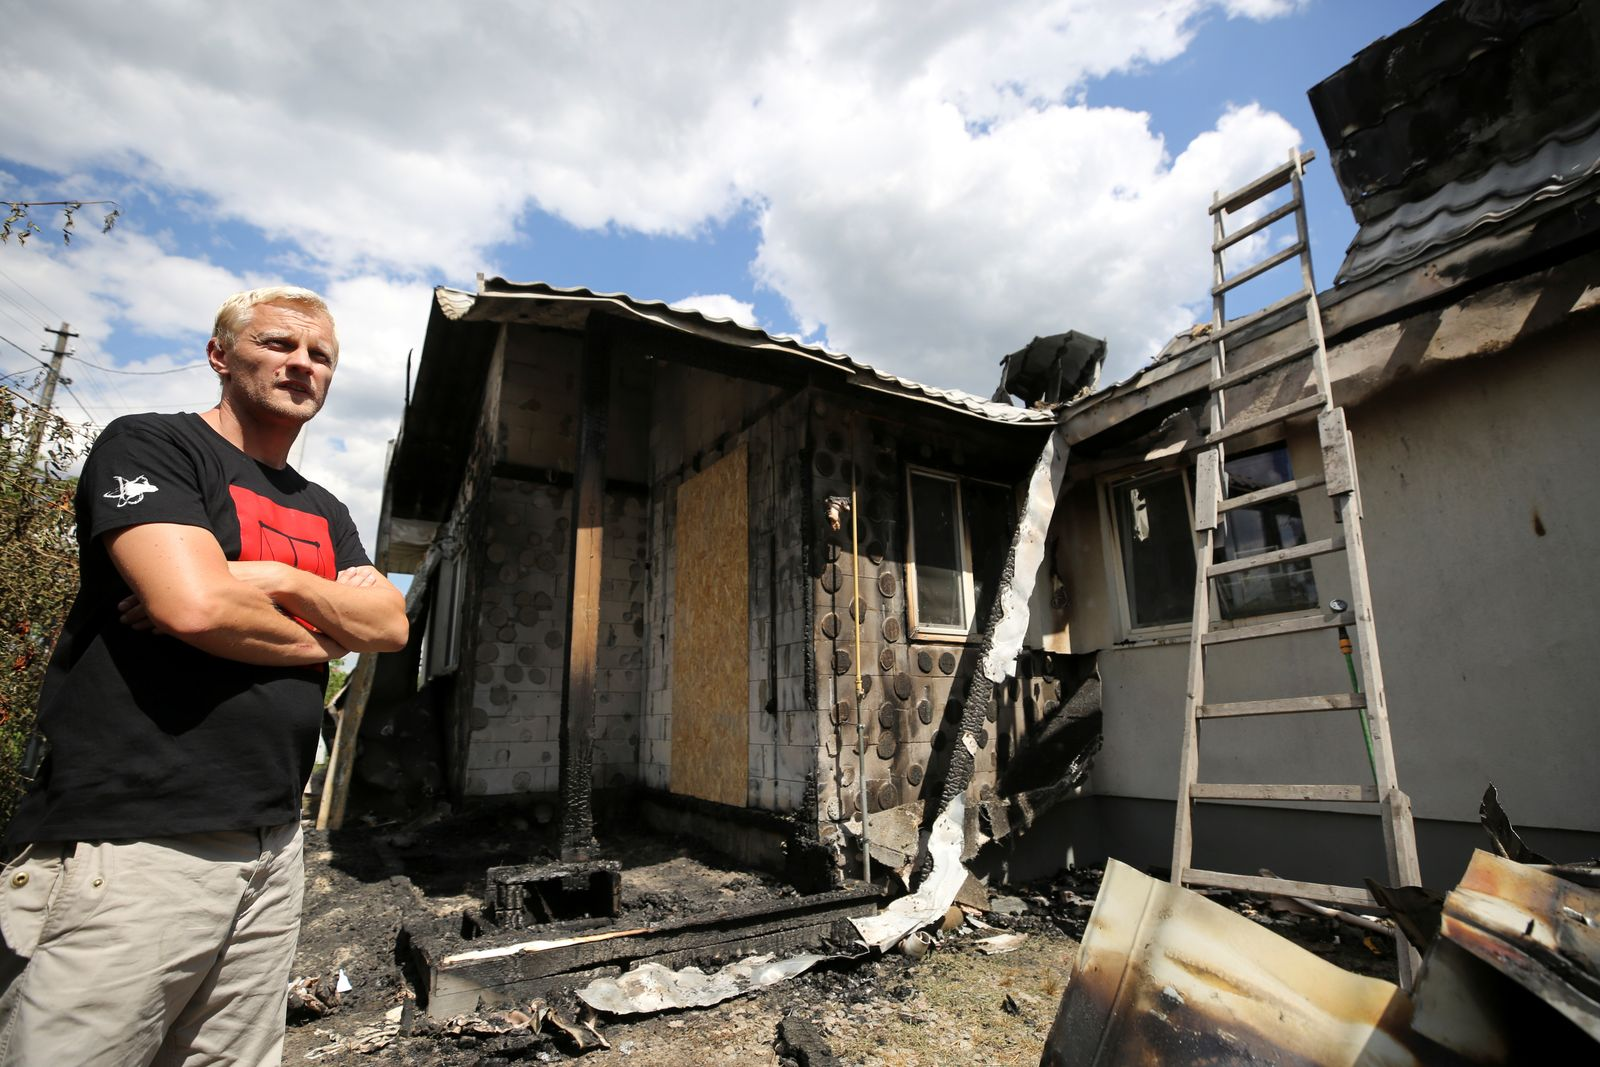 Ukrainian anti-corruption activist Vitaliy Shabunin stands next to his house, damaged by fire, in the village of Hnidyn